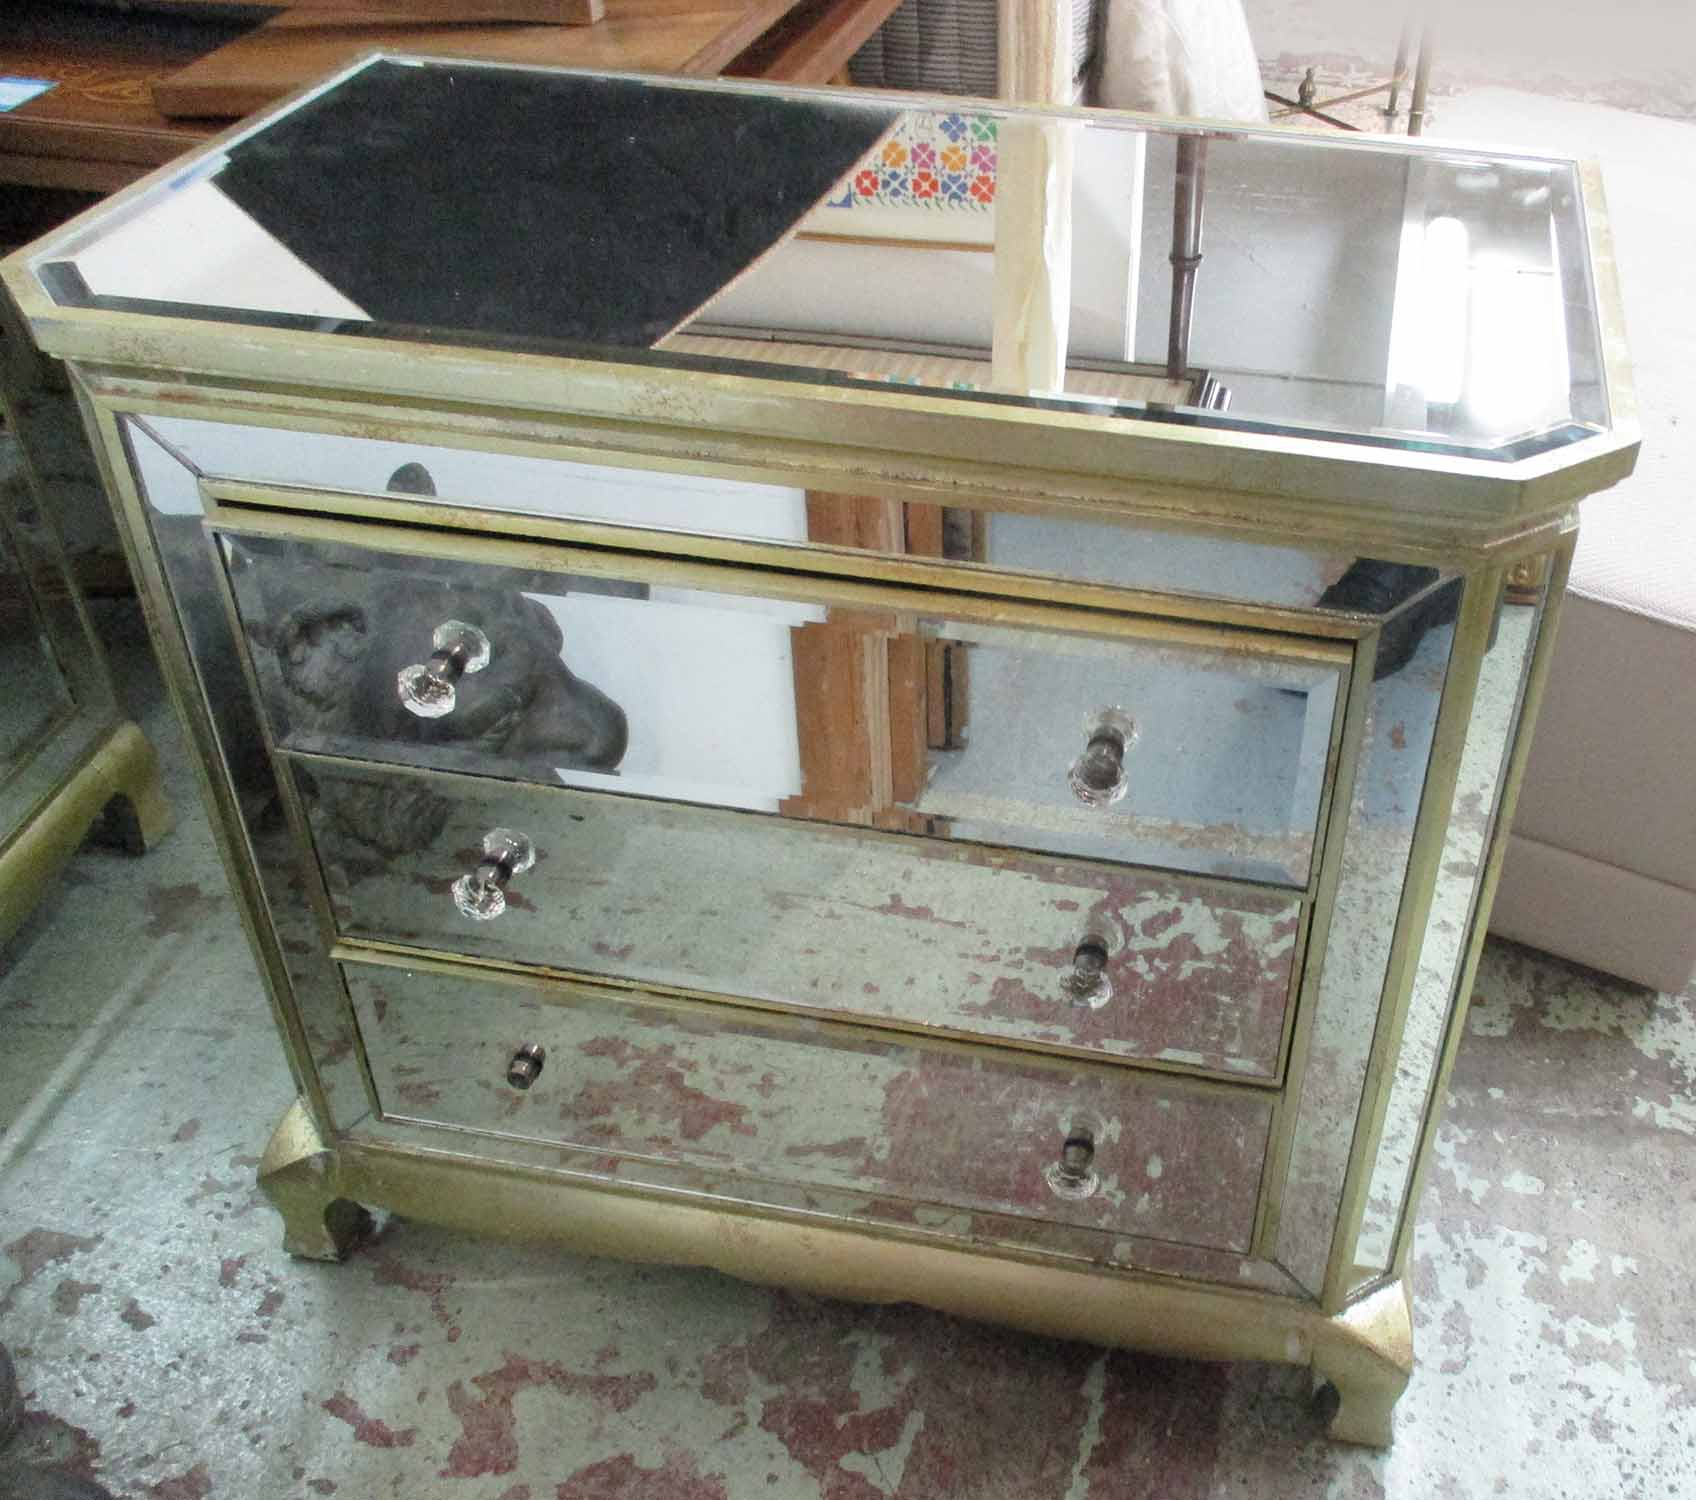 Lot 24 - CHEST OF DRAWERS, French 1950s inspired mirrored finish, 92cm x 51cm x 82cm H.